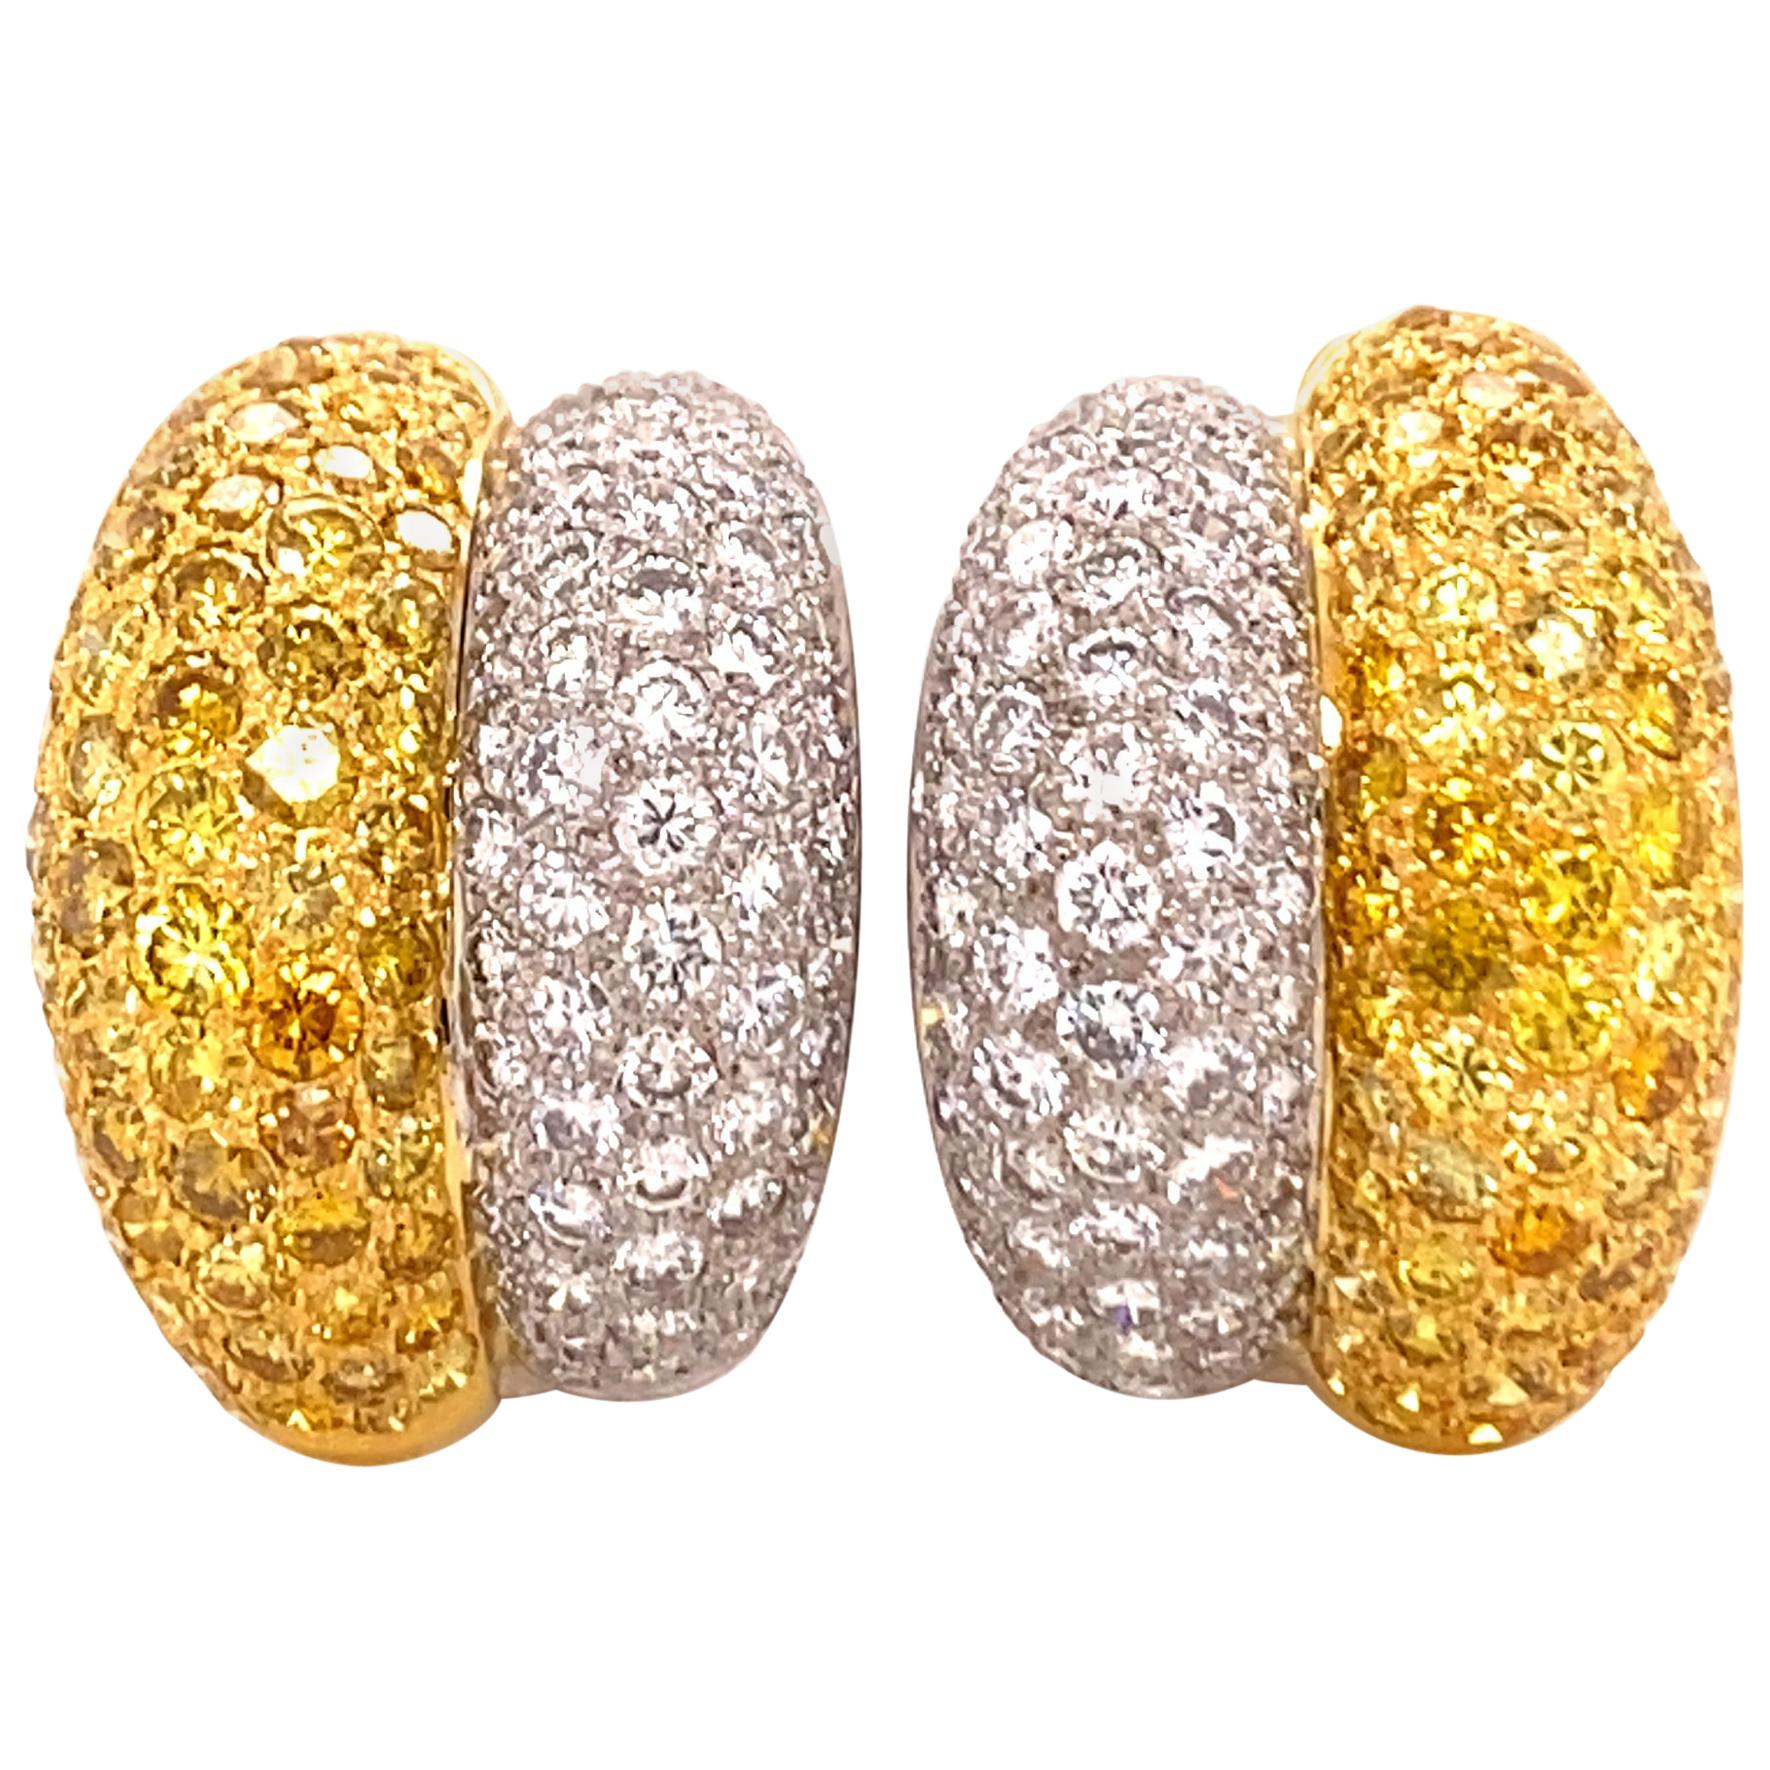 Yellow and White Diamond Bombé Earclips in 18 Karat White and Yellow Gold